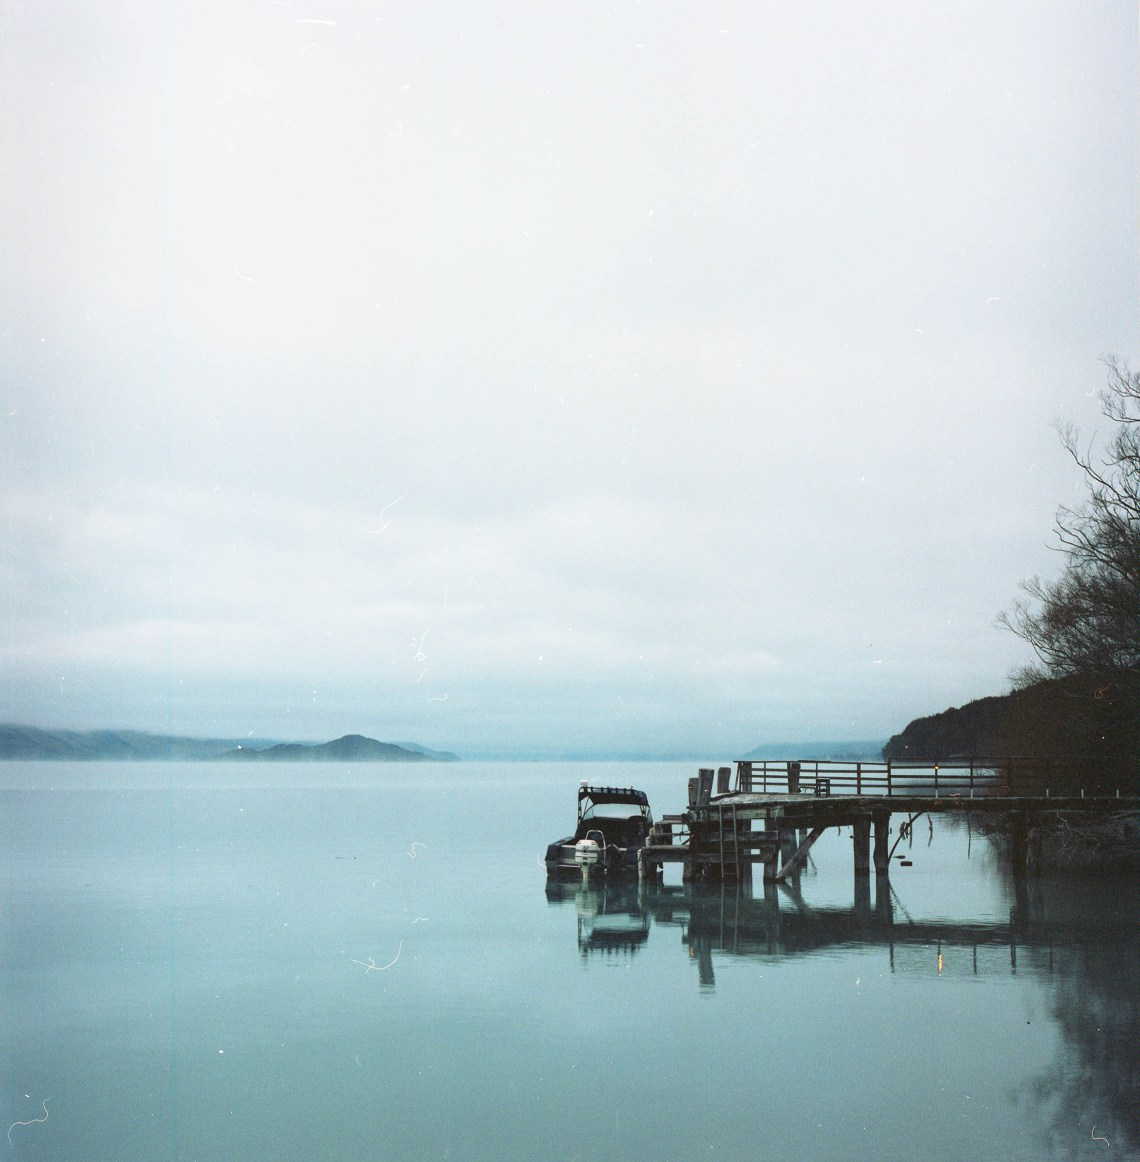 the jetty at kinloch, lake wakatipu, south island, new zealand. copyright leonie wise